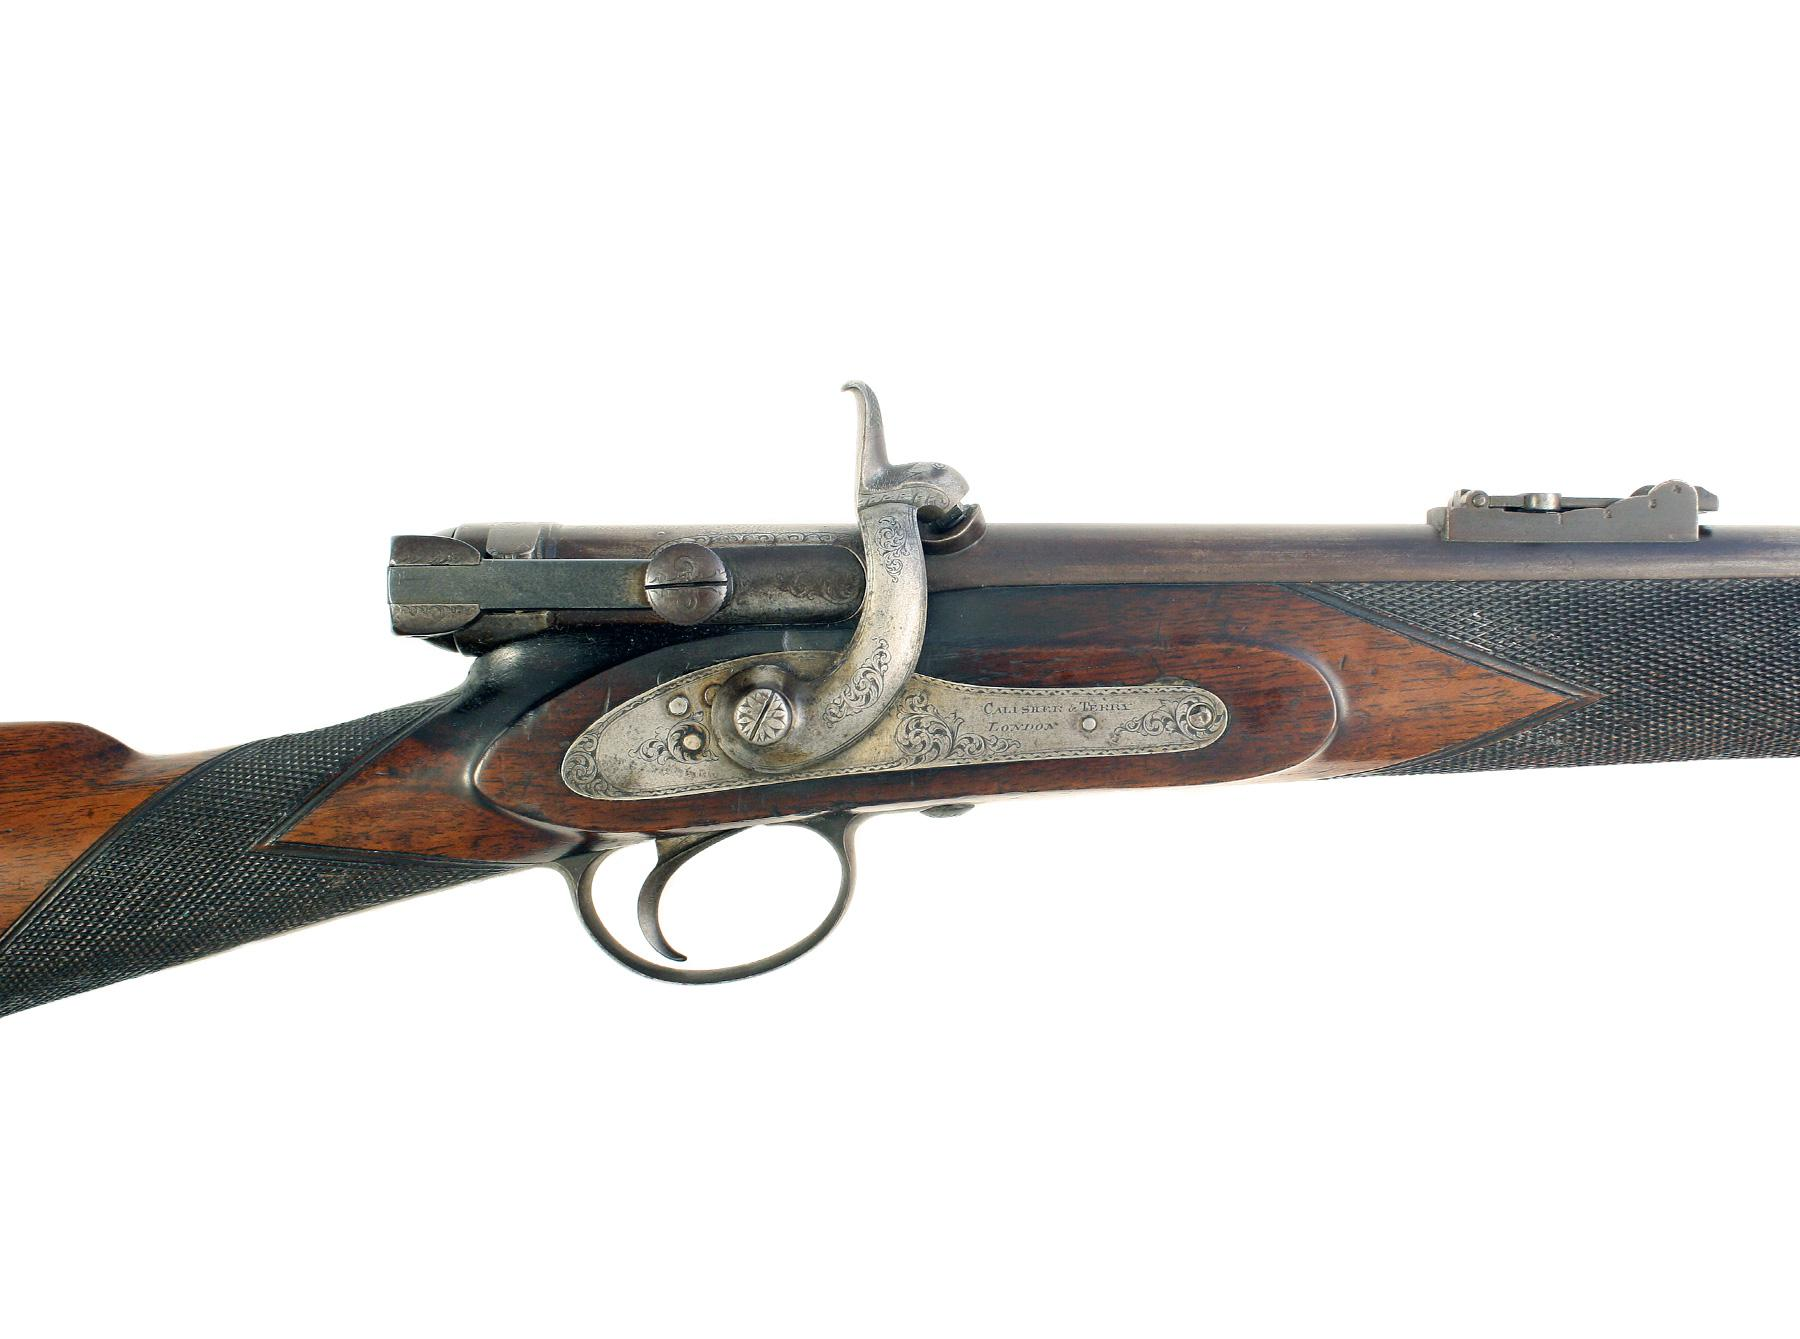 A Breech-Loading Calisher & Terry Rifle